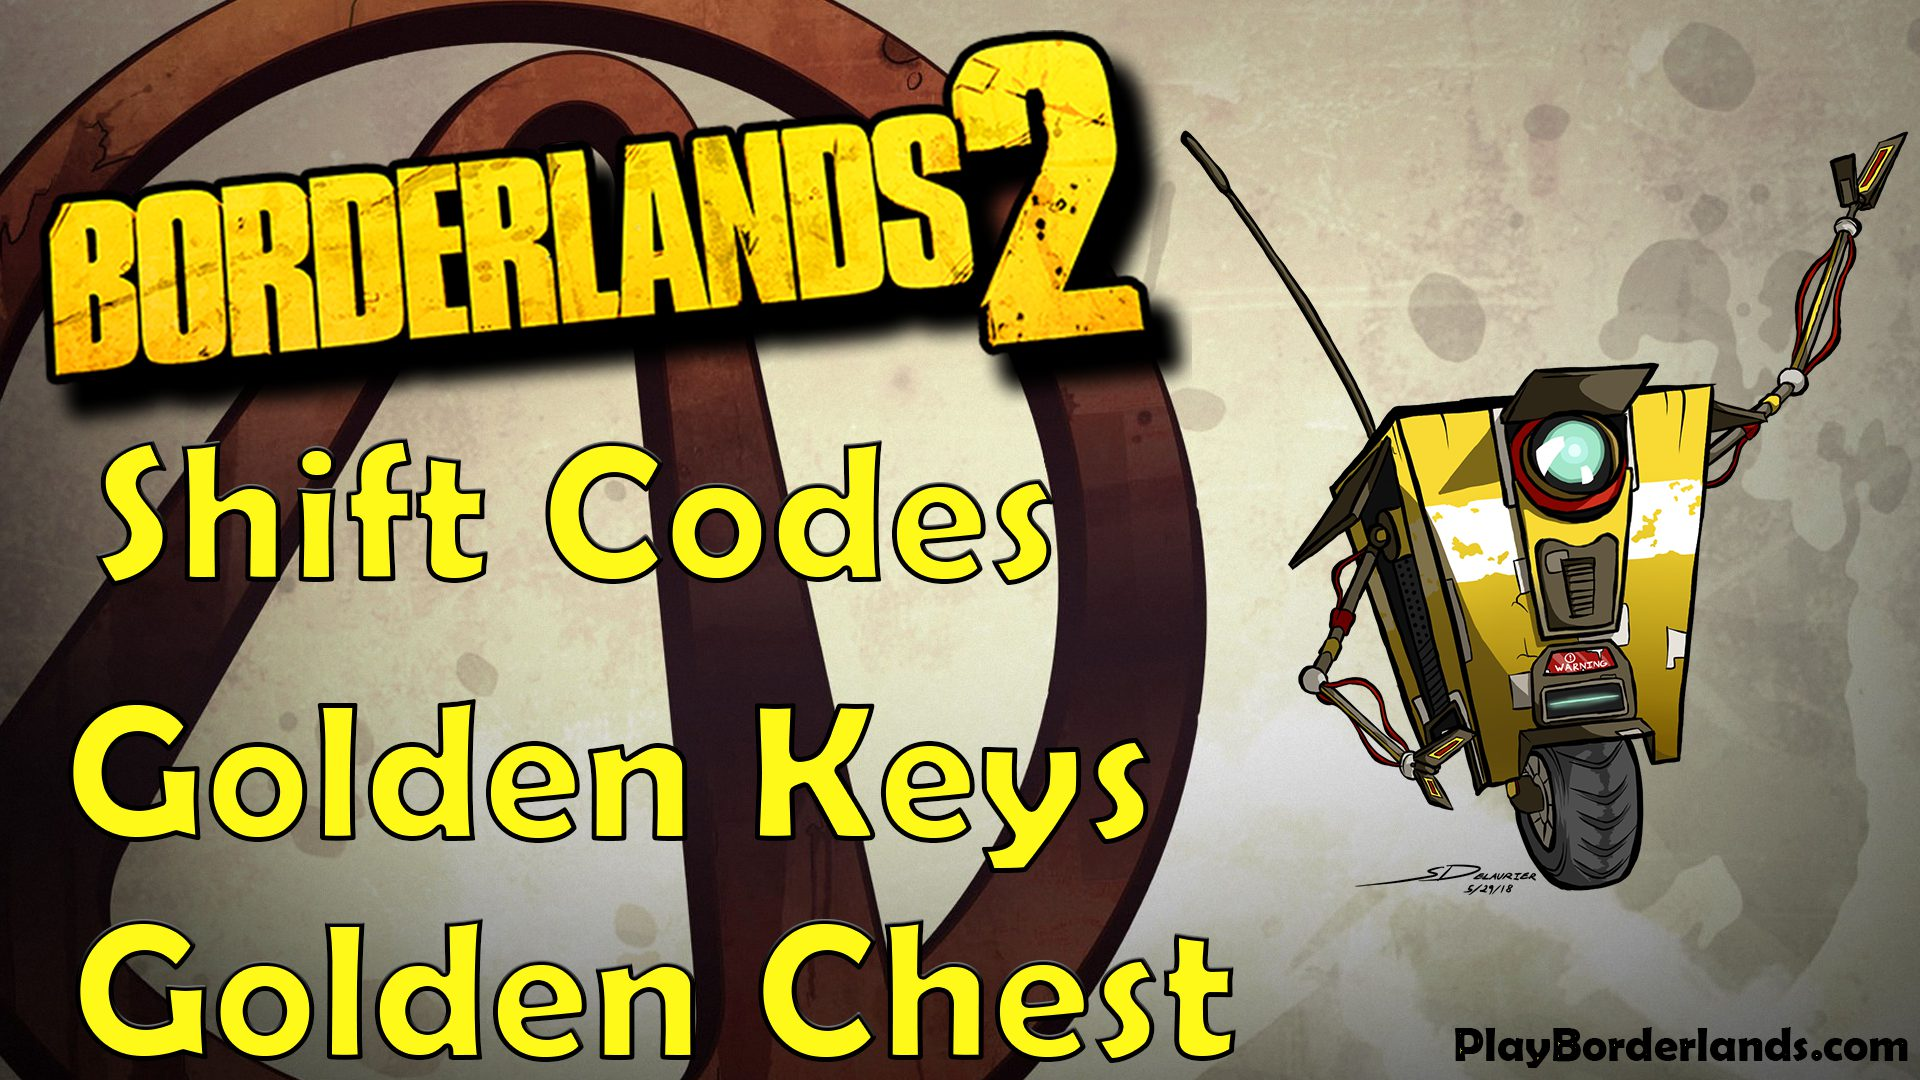 Borderlands 2 shift code golden keys golden chests